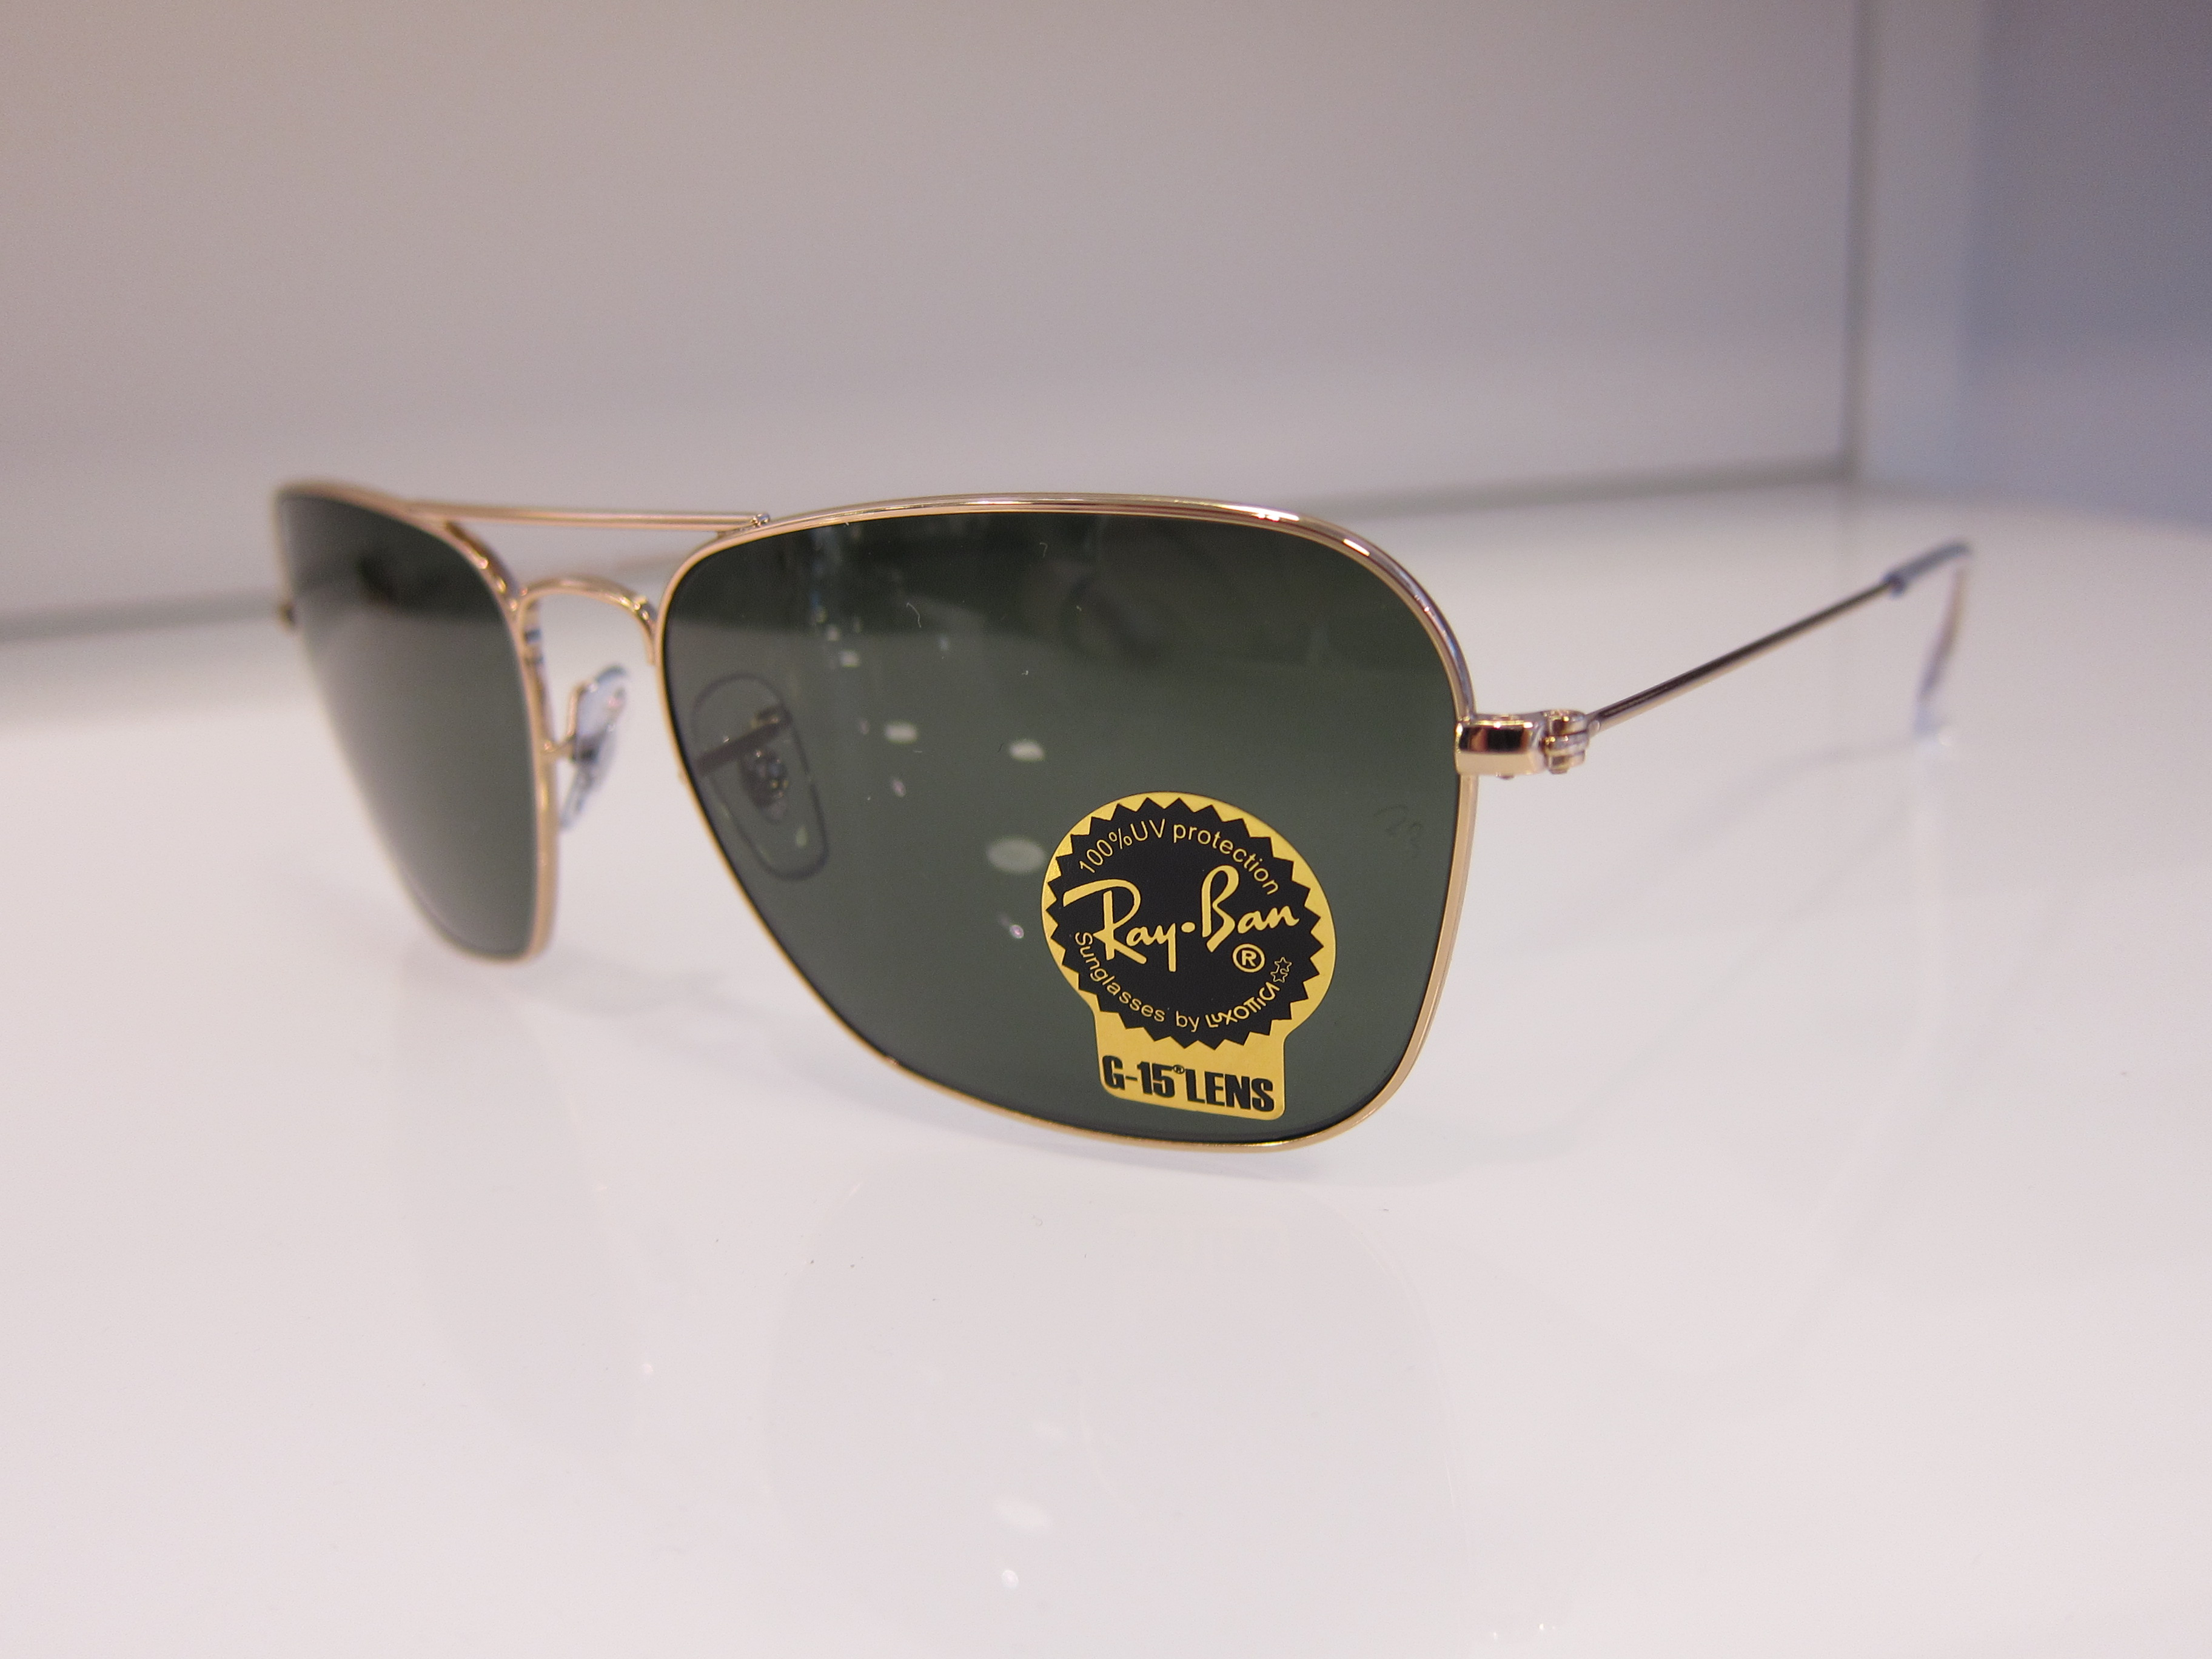 what is ray ban g15 lens